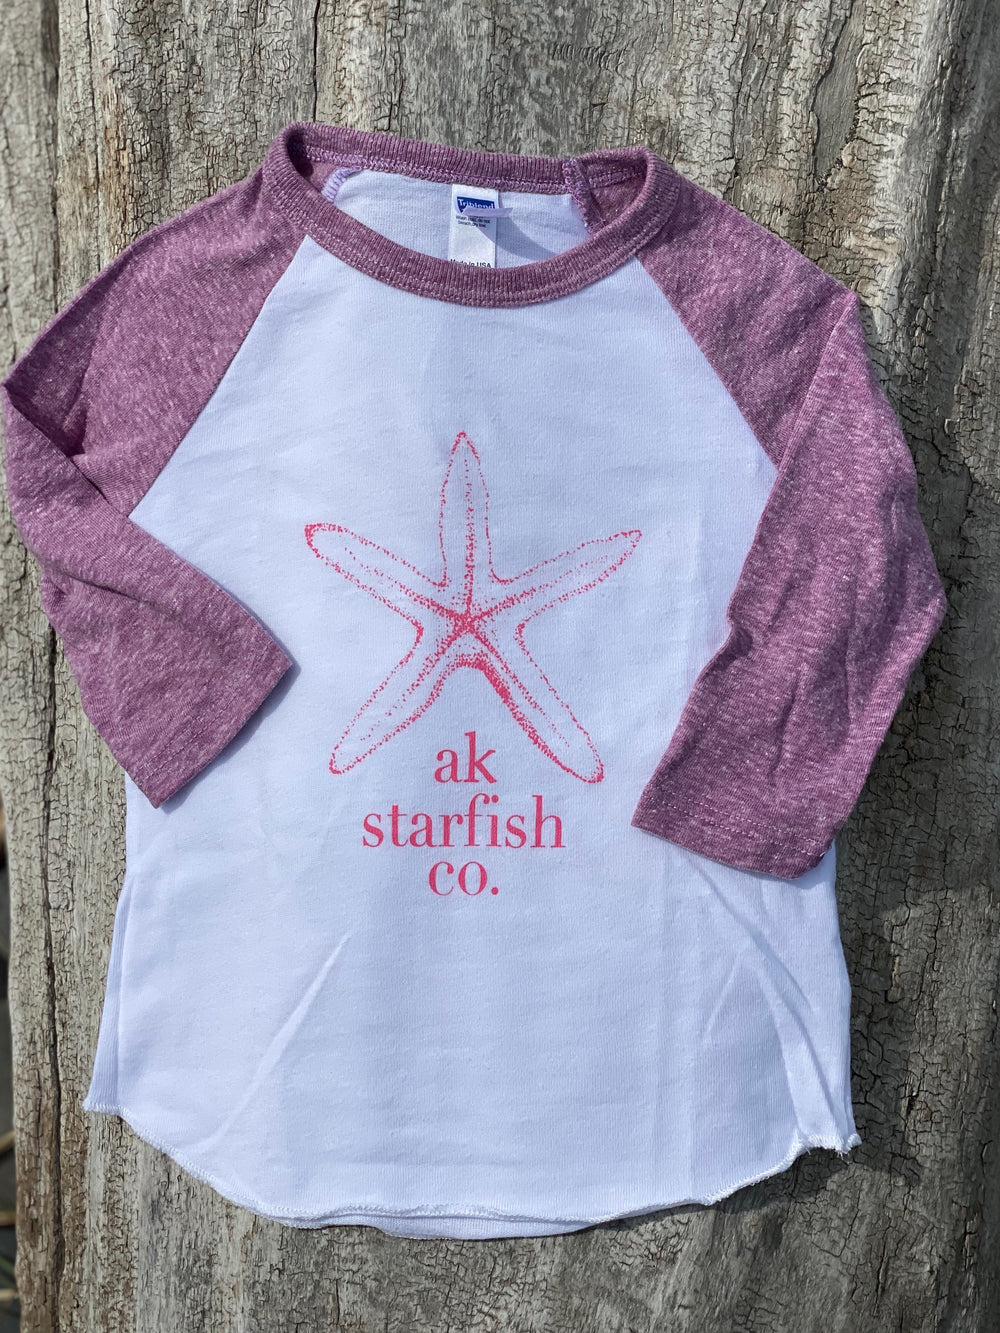 White with Beach Mussel Shell Sleeve AK Starfish Co. 3/4 Sleeve Raglan $30.00